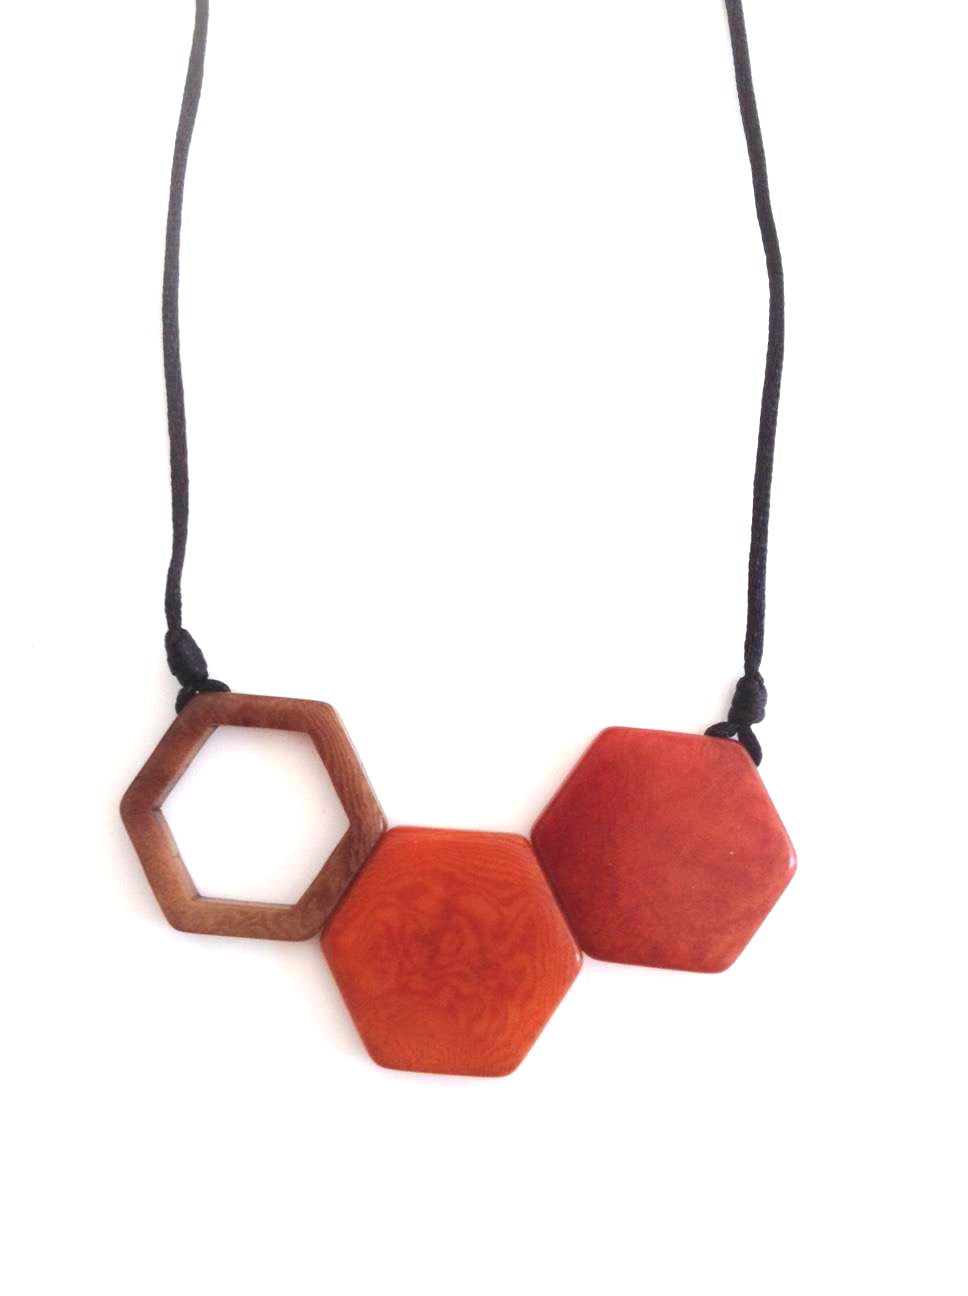 Rombos Necklace - Orange & Light Brown Tones